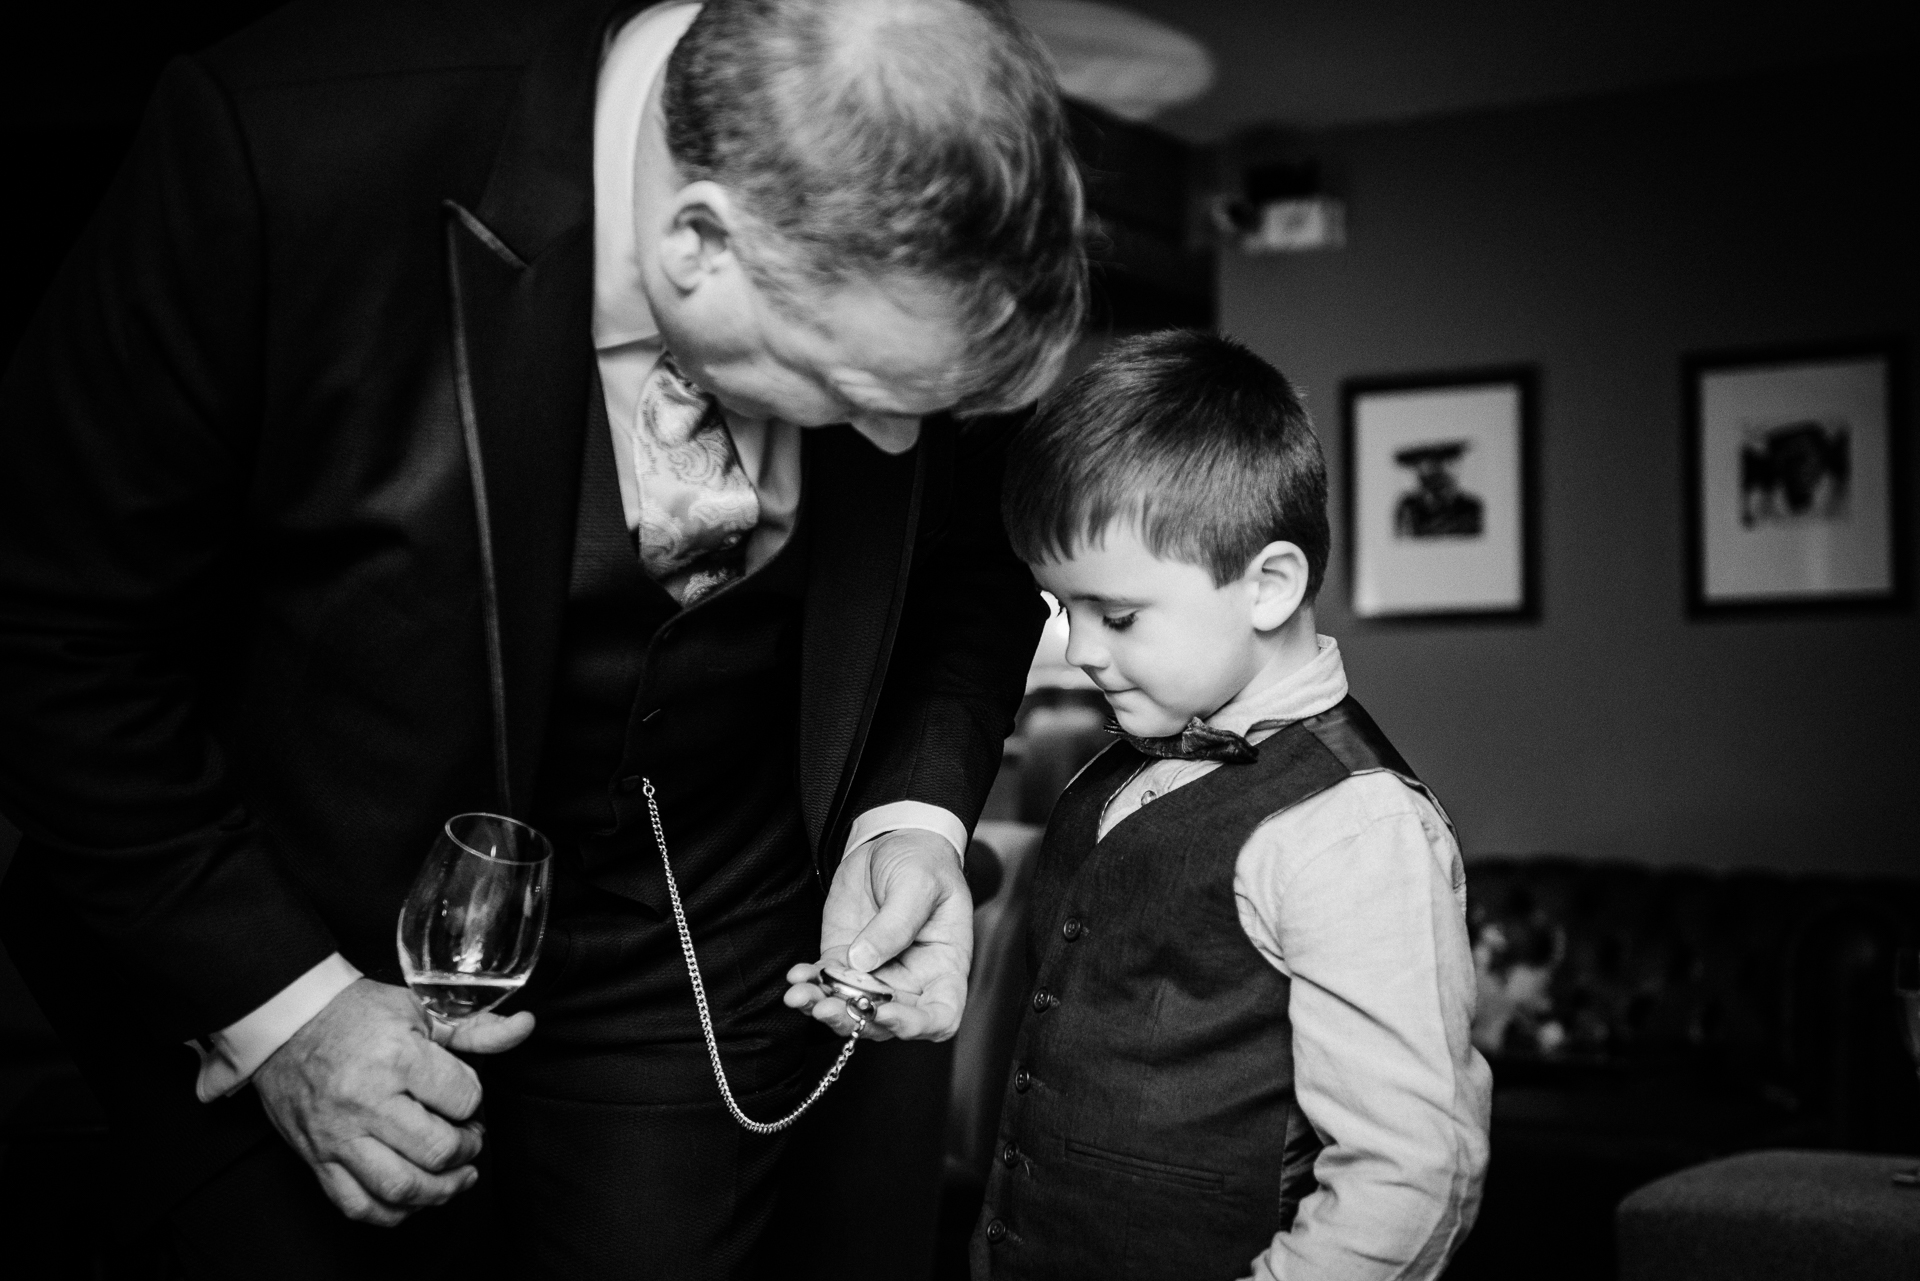 Brighton Elopement Groom w/ Kid Image | The groom takes out his pocket watch